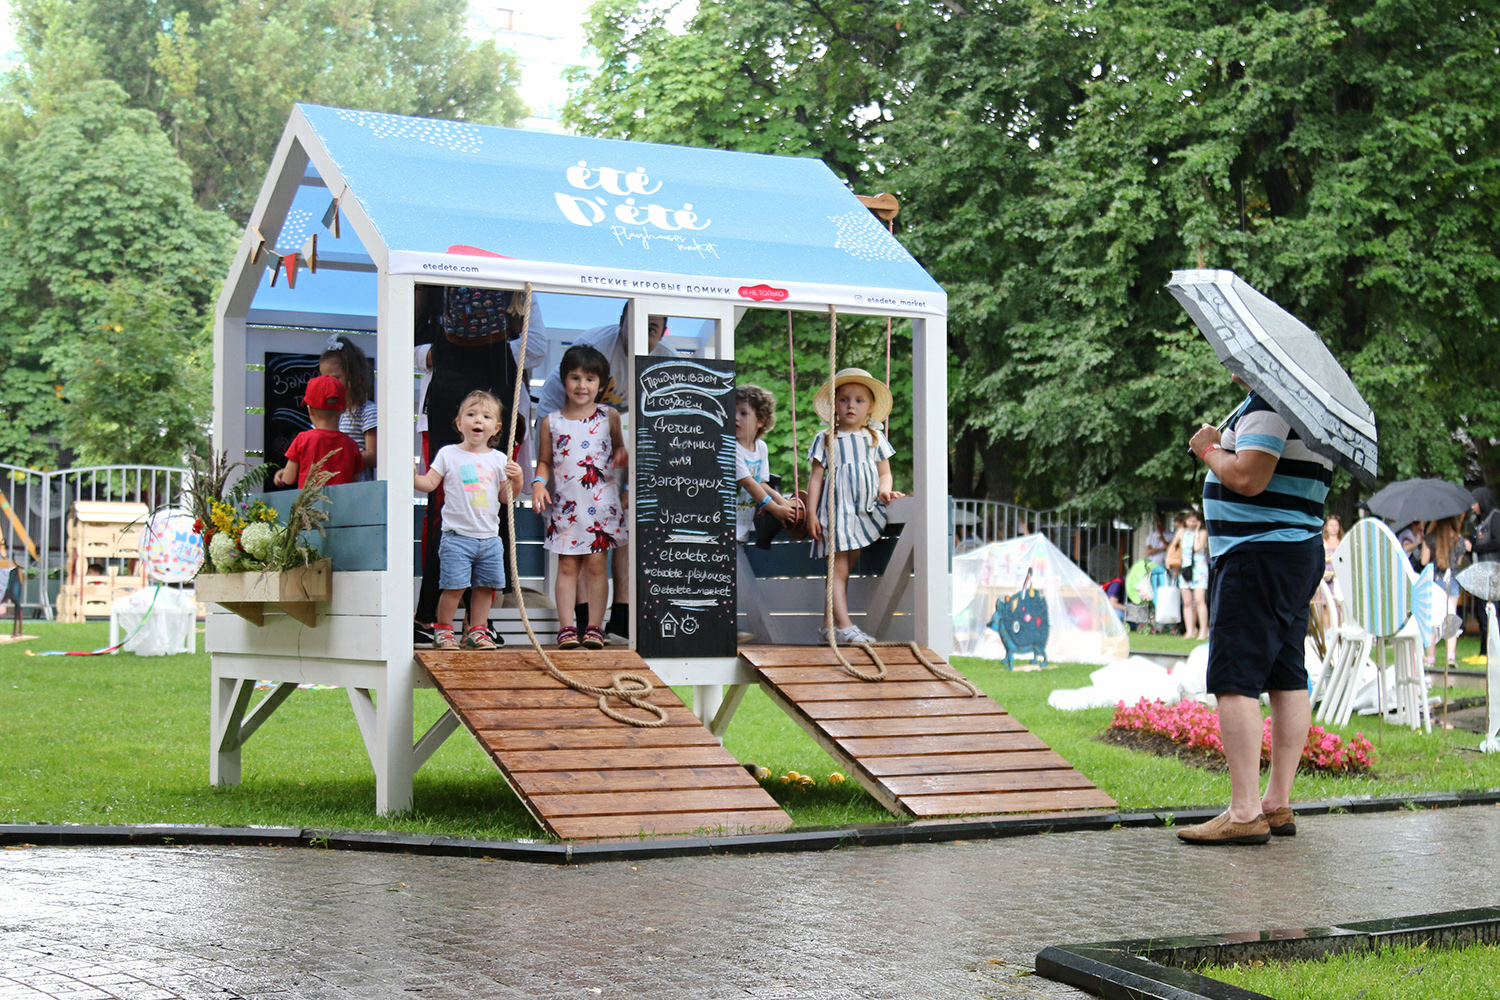 Été D'été (Эти Дети) playhouses